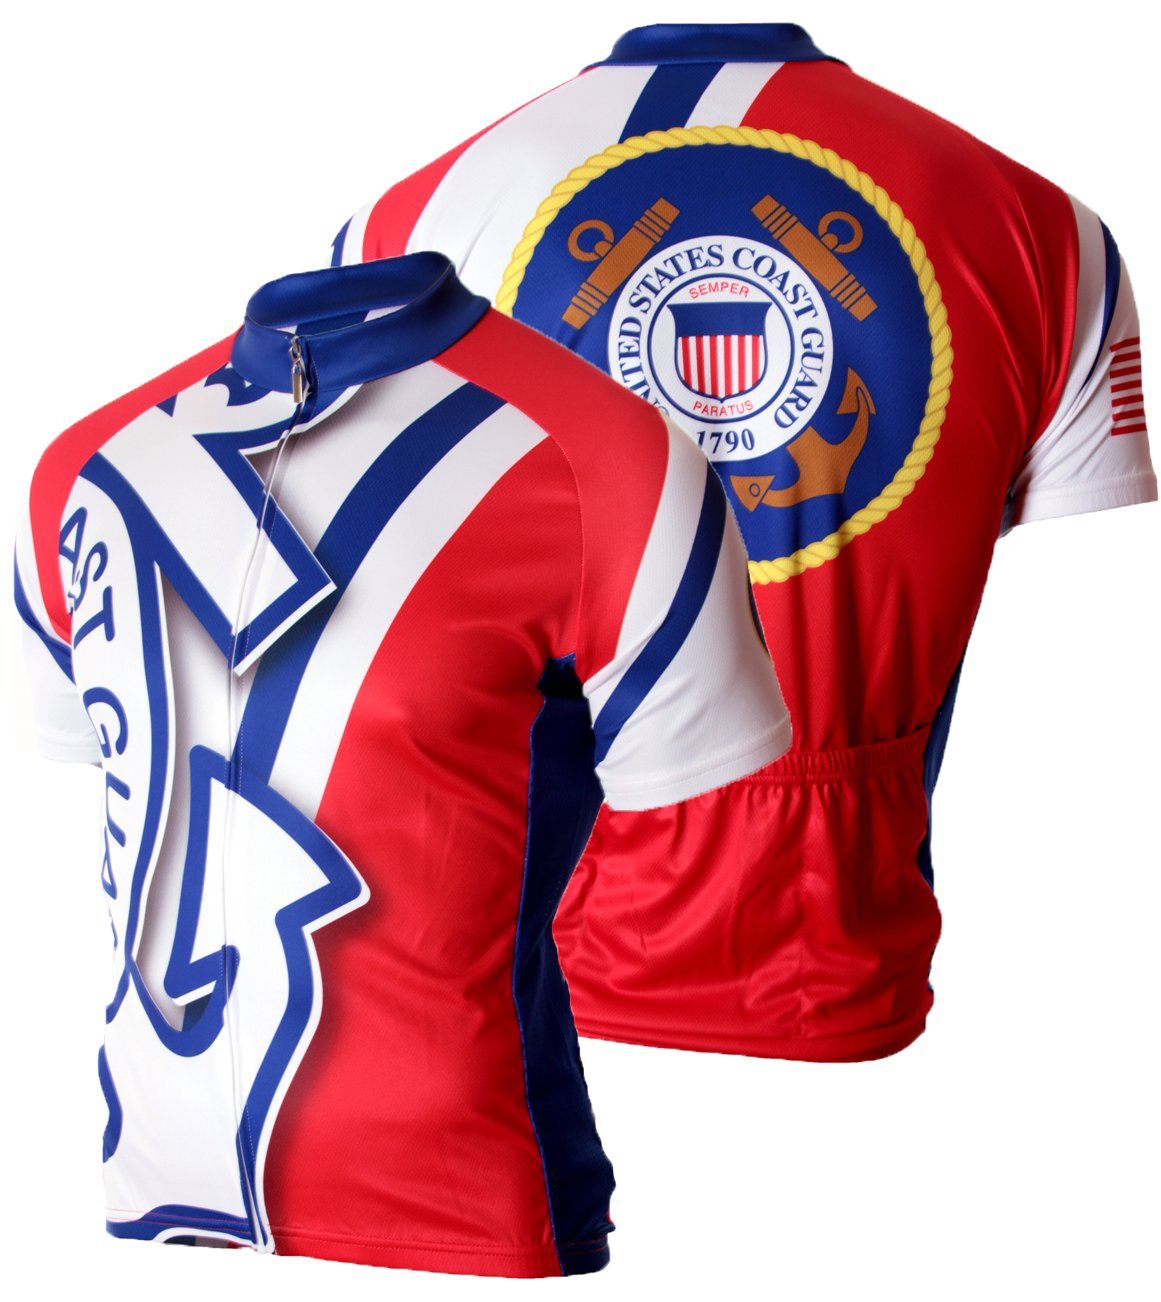 83 Sportswear US Coast Guard Cycling Jersey